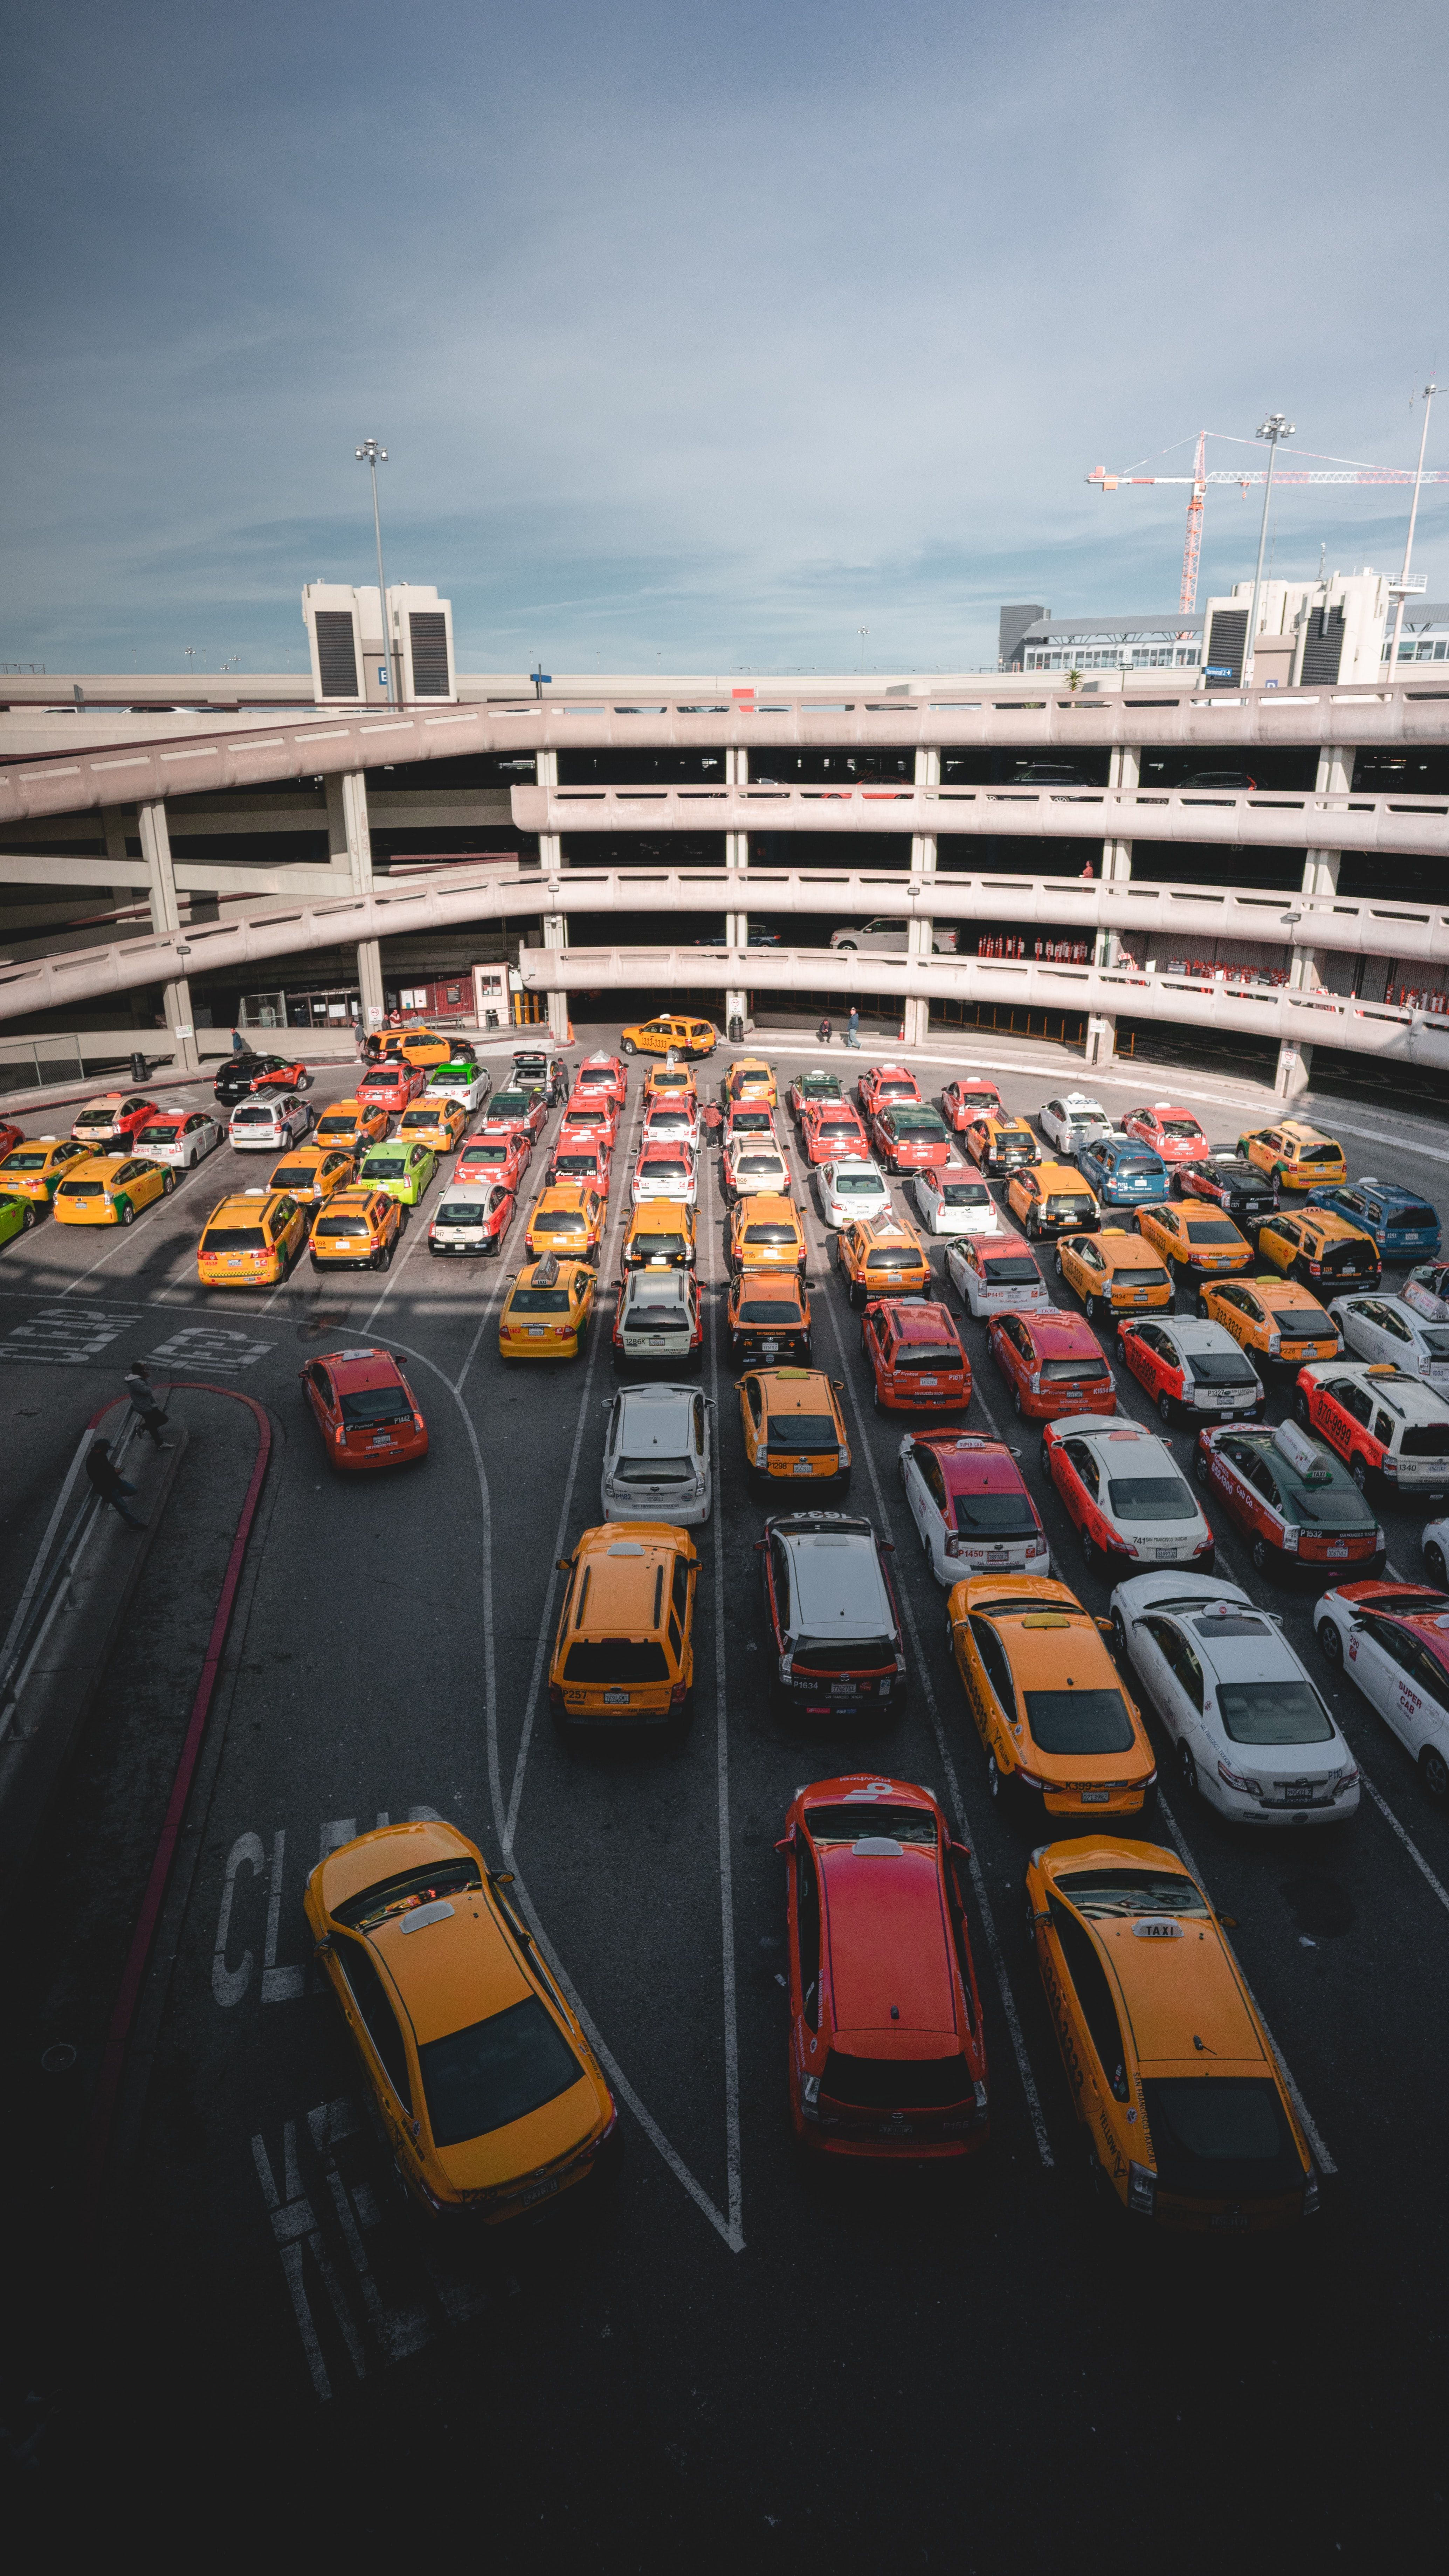 Different cars parking near white buildings in 2020 (With